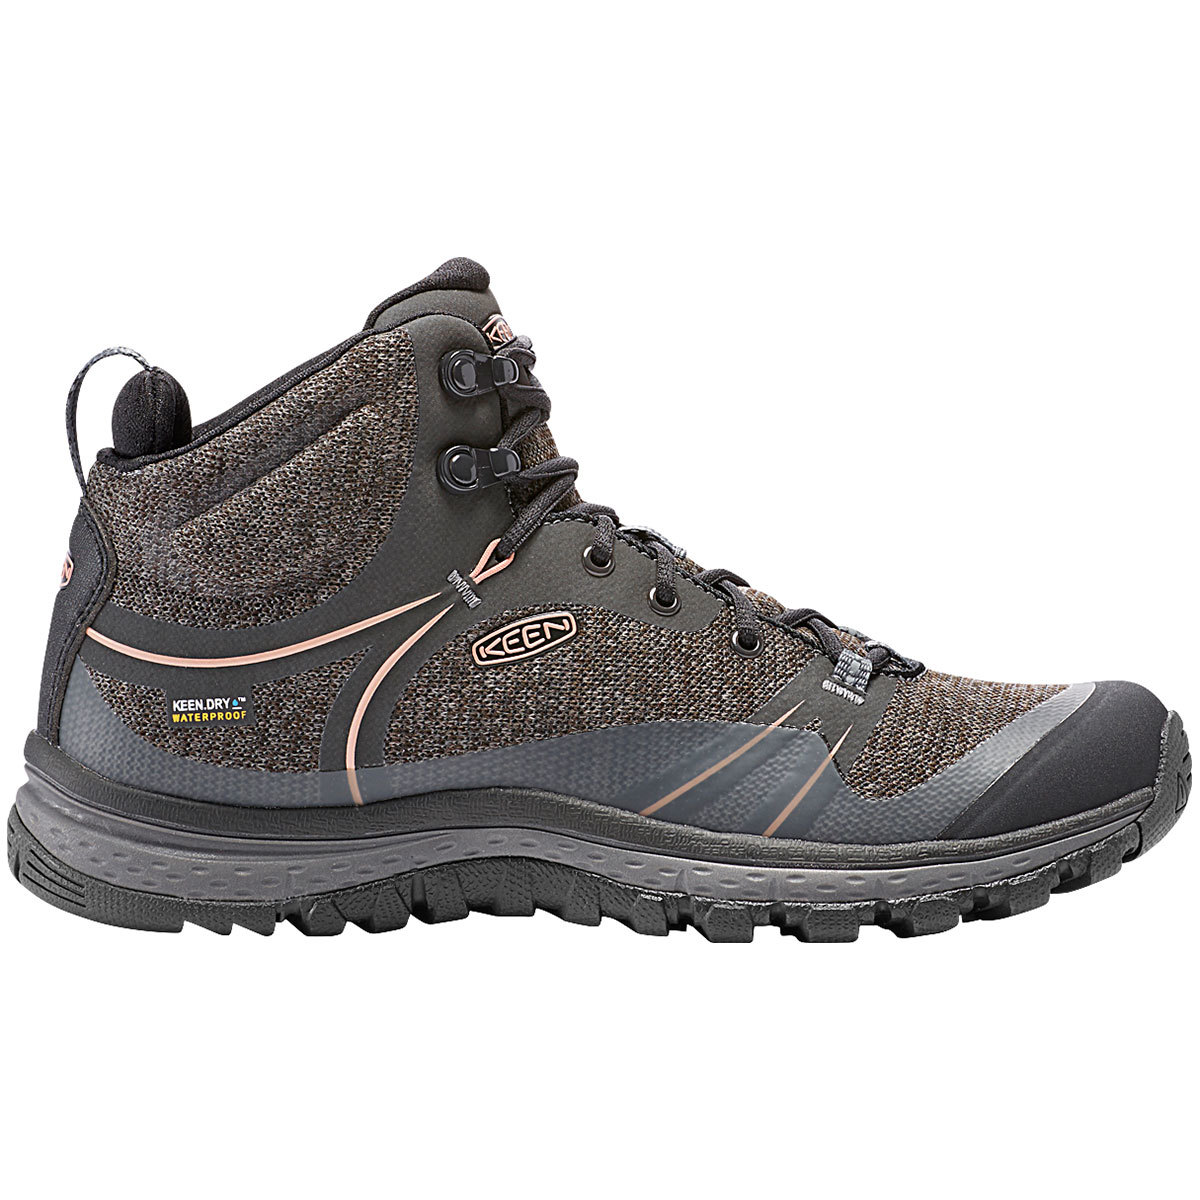 Keen Women's Terradora Mid Waterproof Hiking Boots, Raven - Black, 7.5